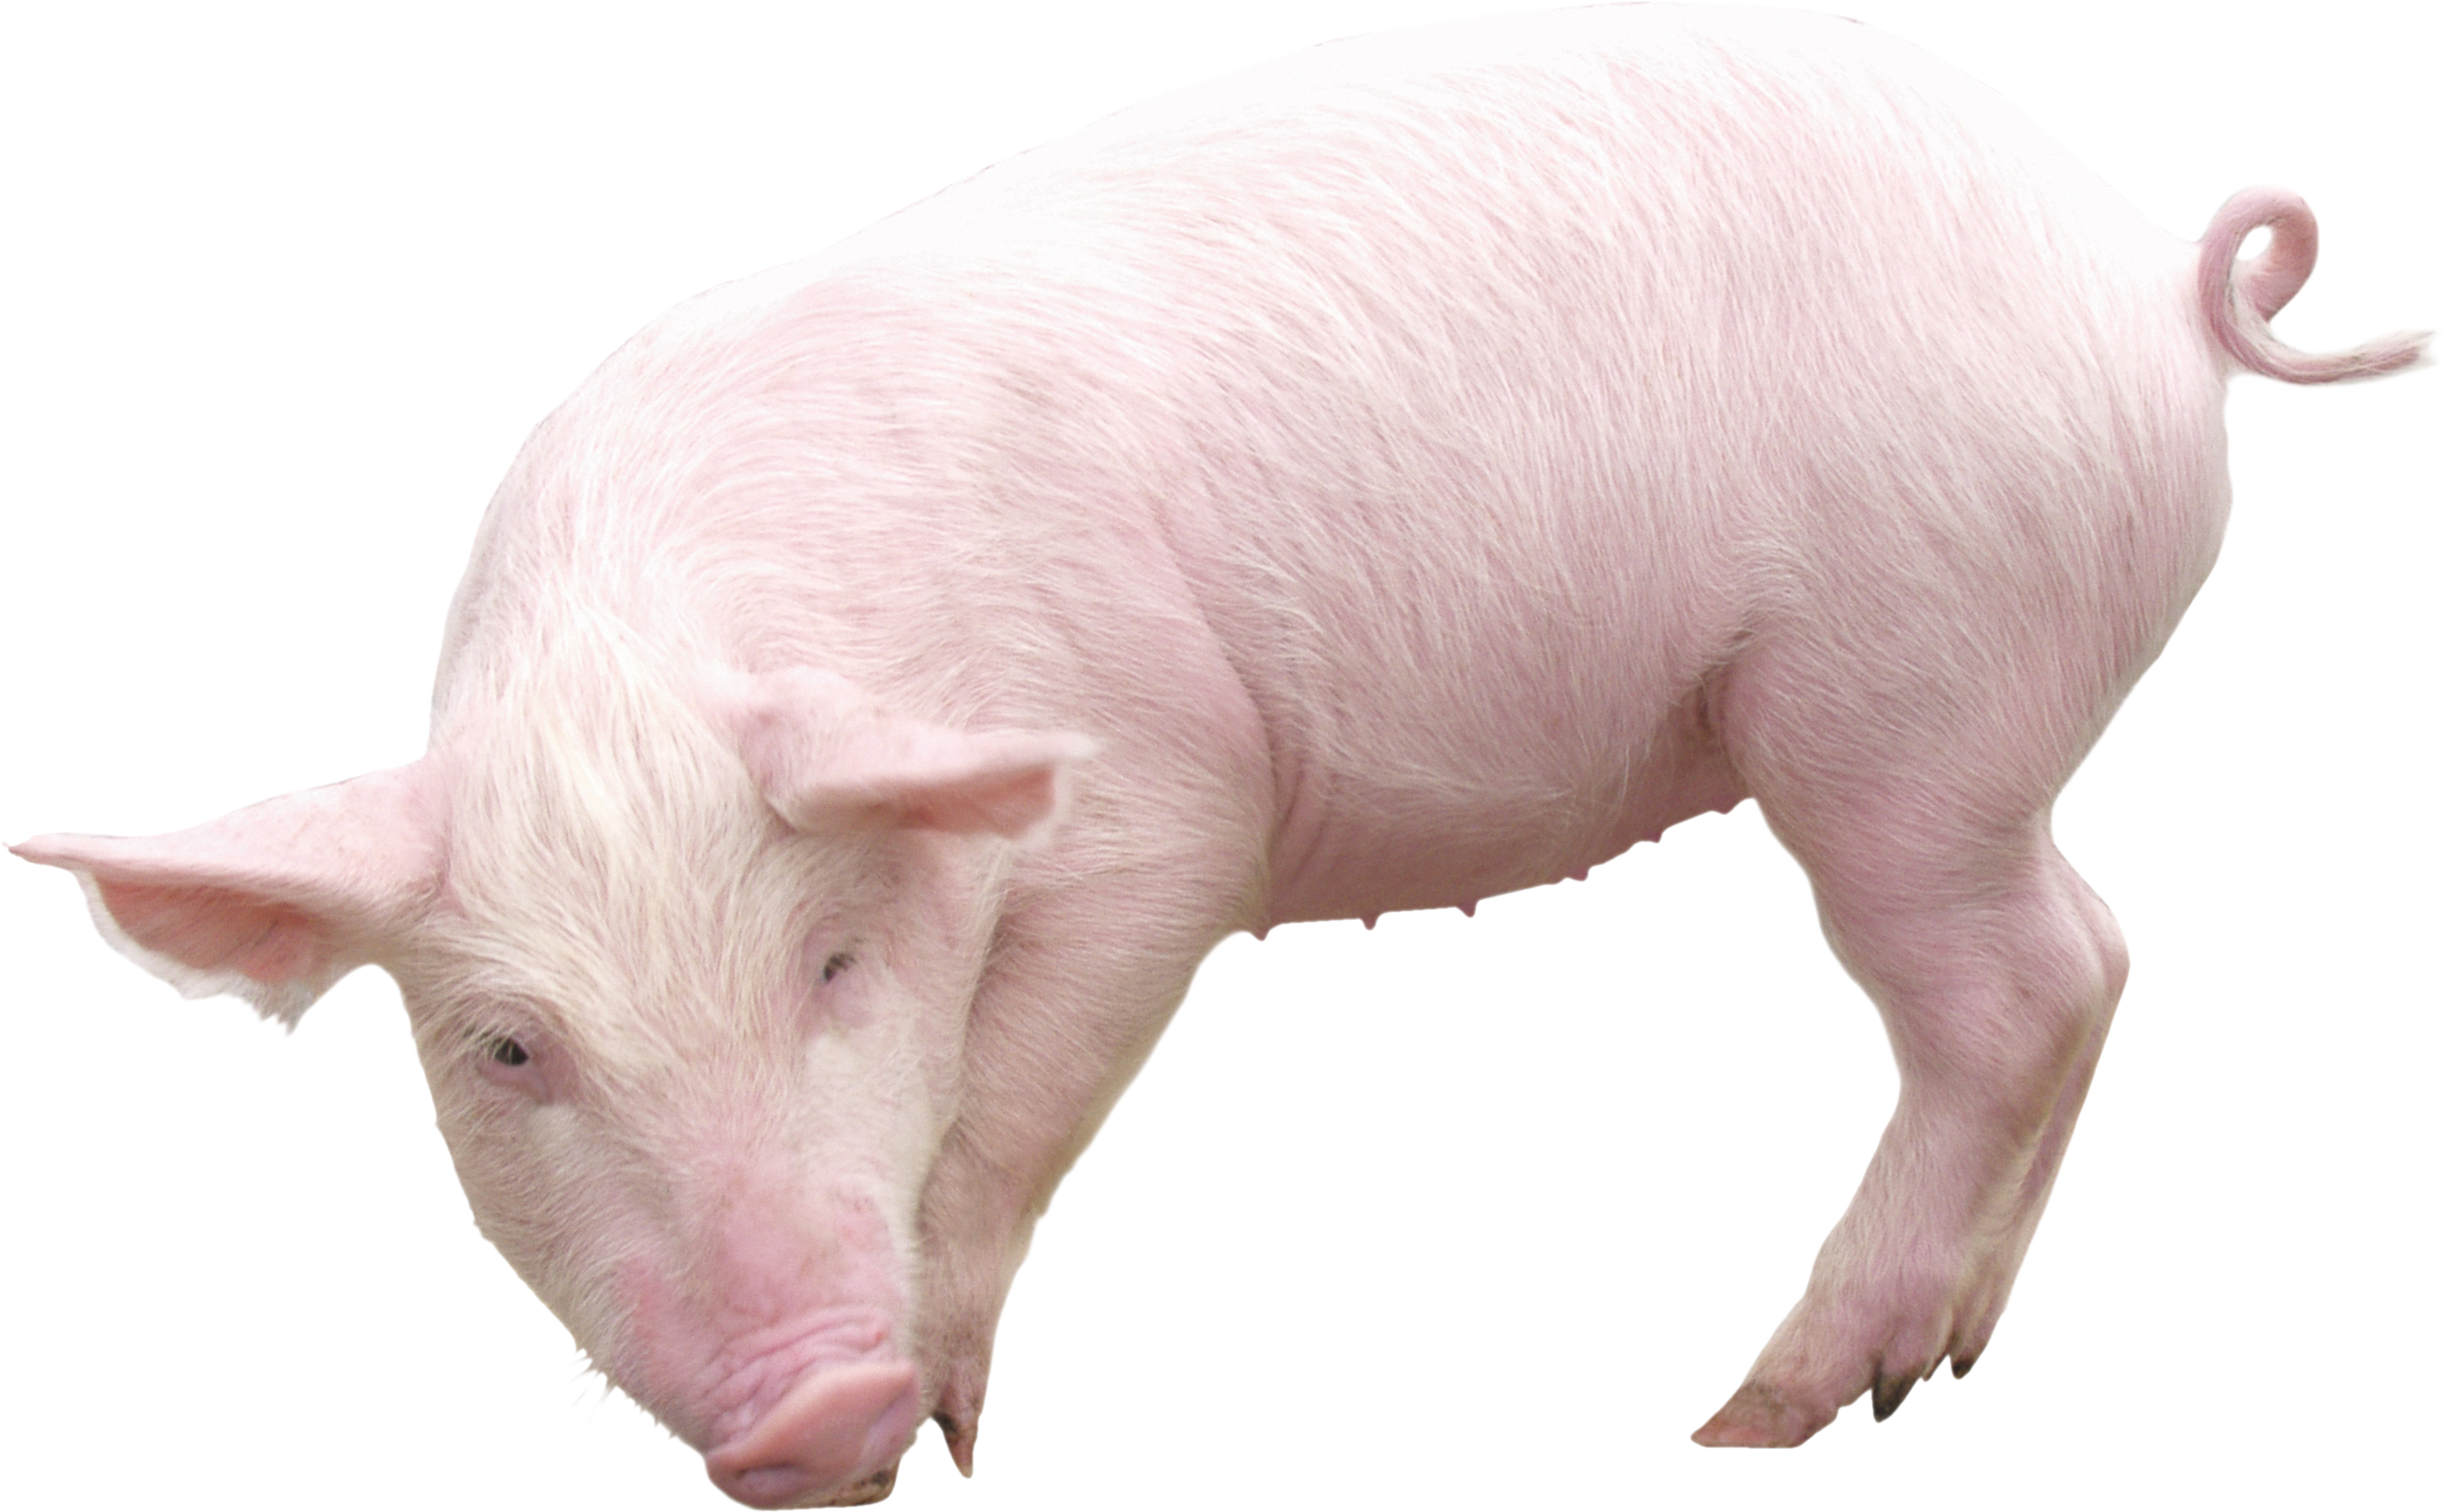 pig PNG image - Pig HD PNG